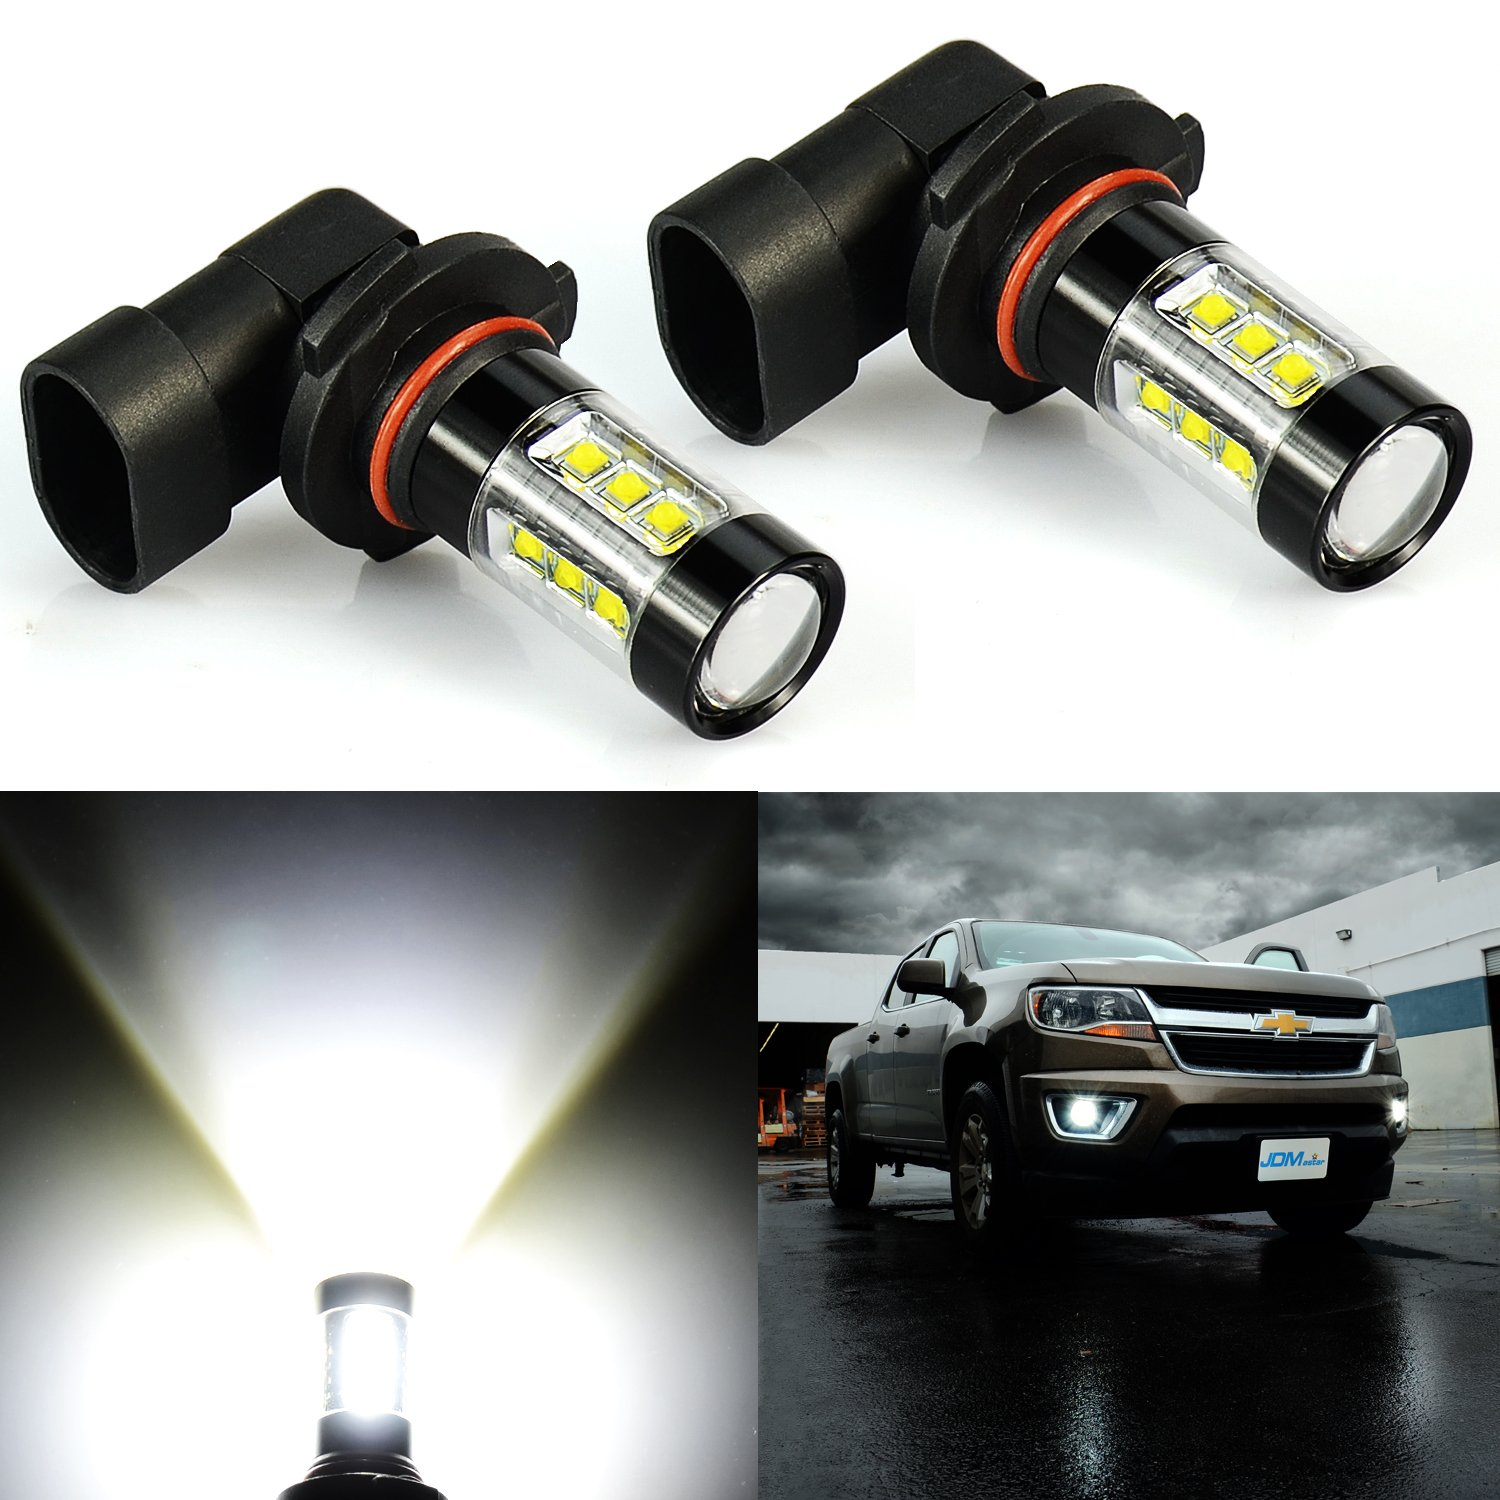 Jdm Astar Jdm Astar Extremely Bright Max 80w High Power 90409140914590509155 H10 Led Fog Light Bulbs For Drl Or Fog Lights Xenon White Amazon In Car Motorbike